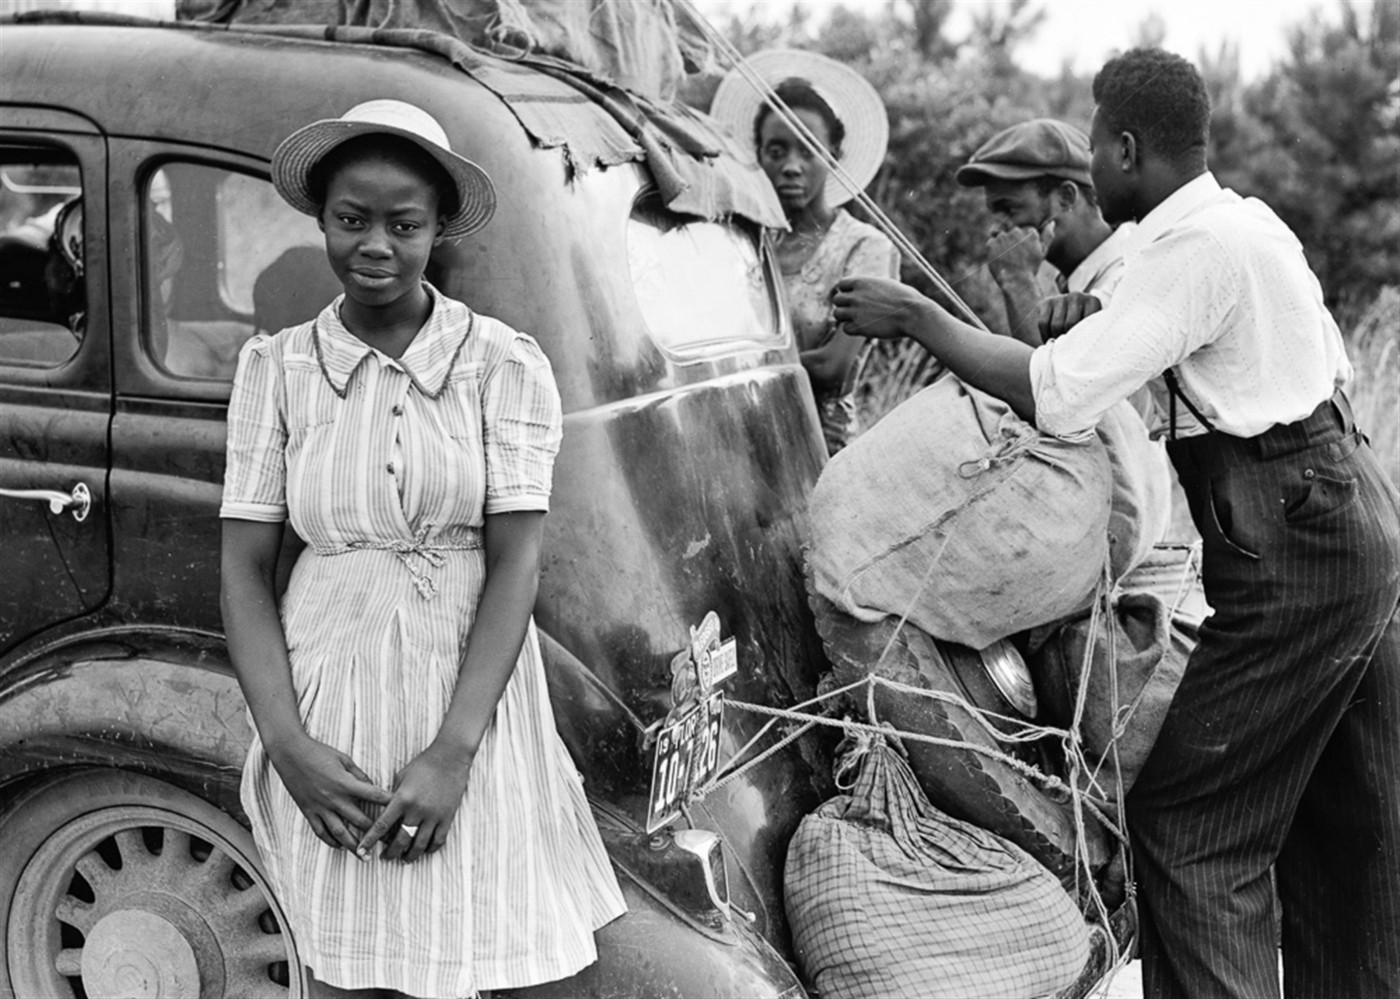 African American family preparing for long-distance driving trip prior to 1950.